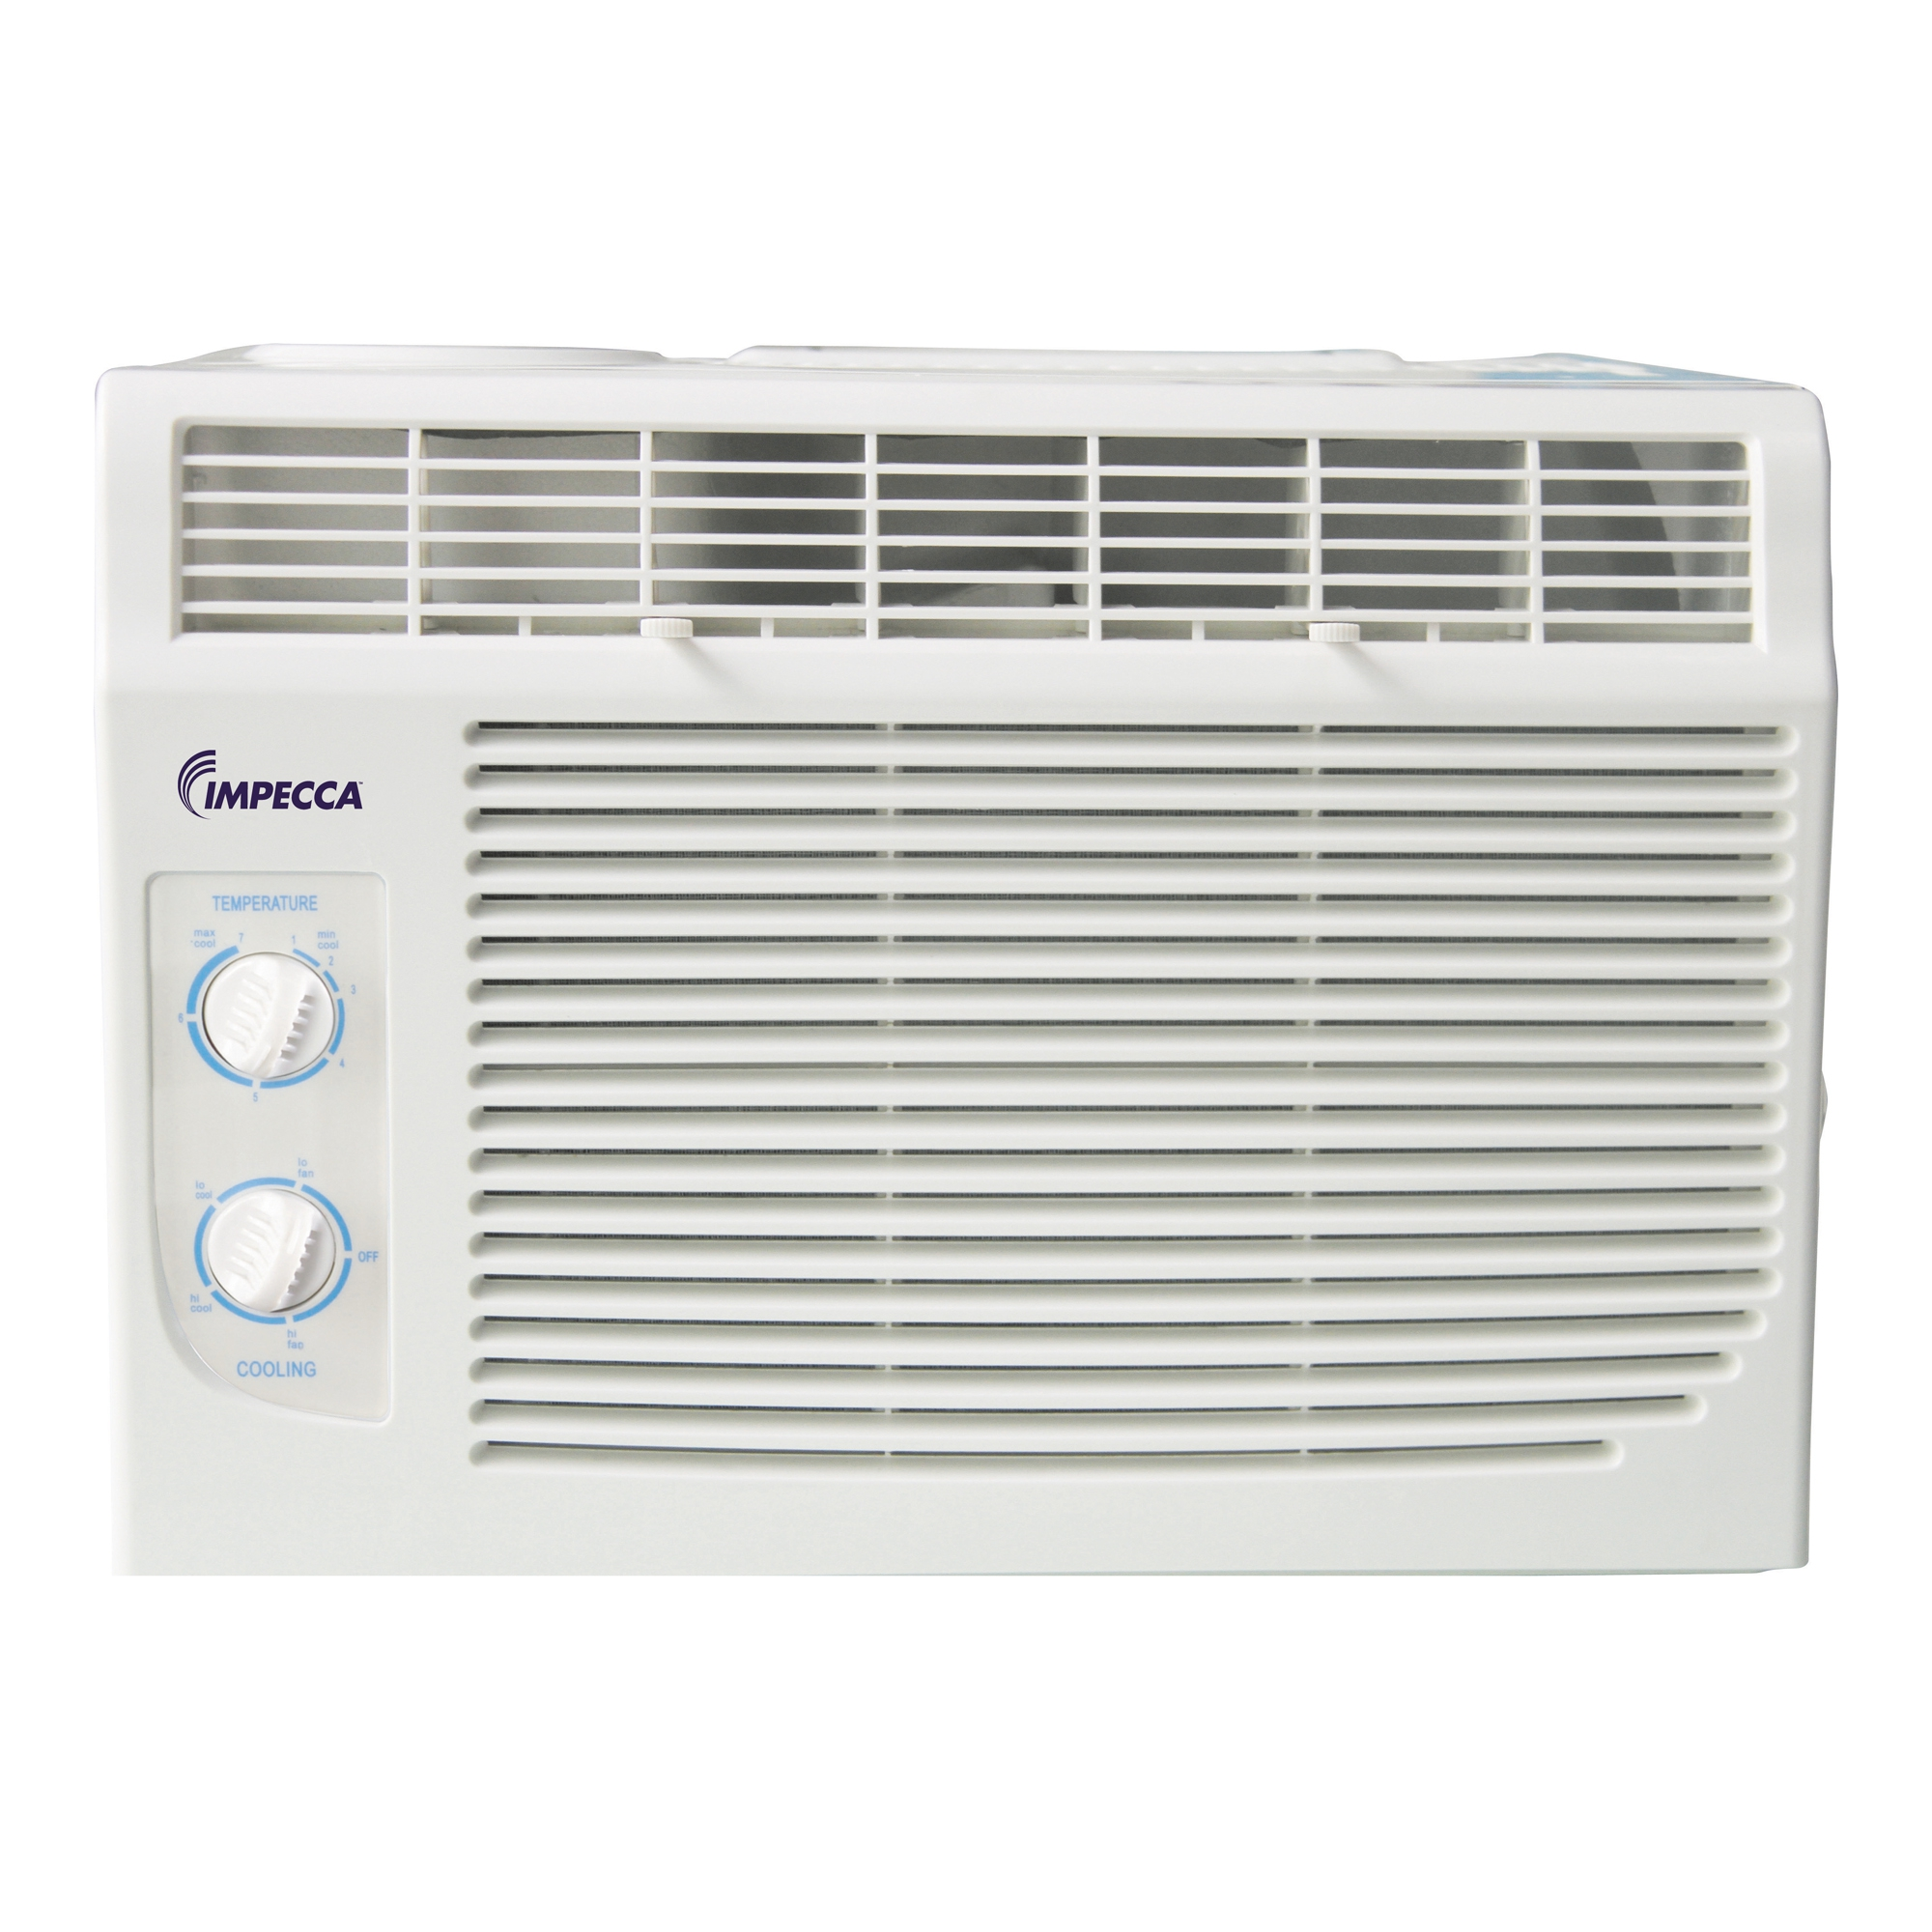 Impecca 6 000 btu h mechanical controlled mini window air for Window unit air conditioner malaysia